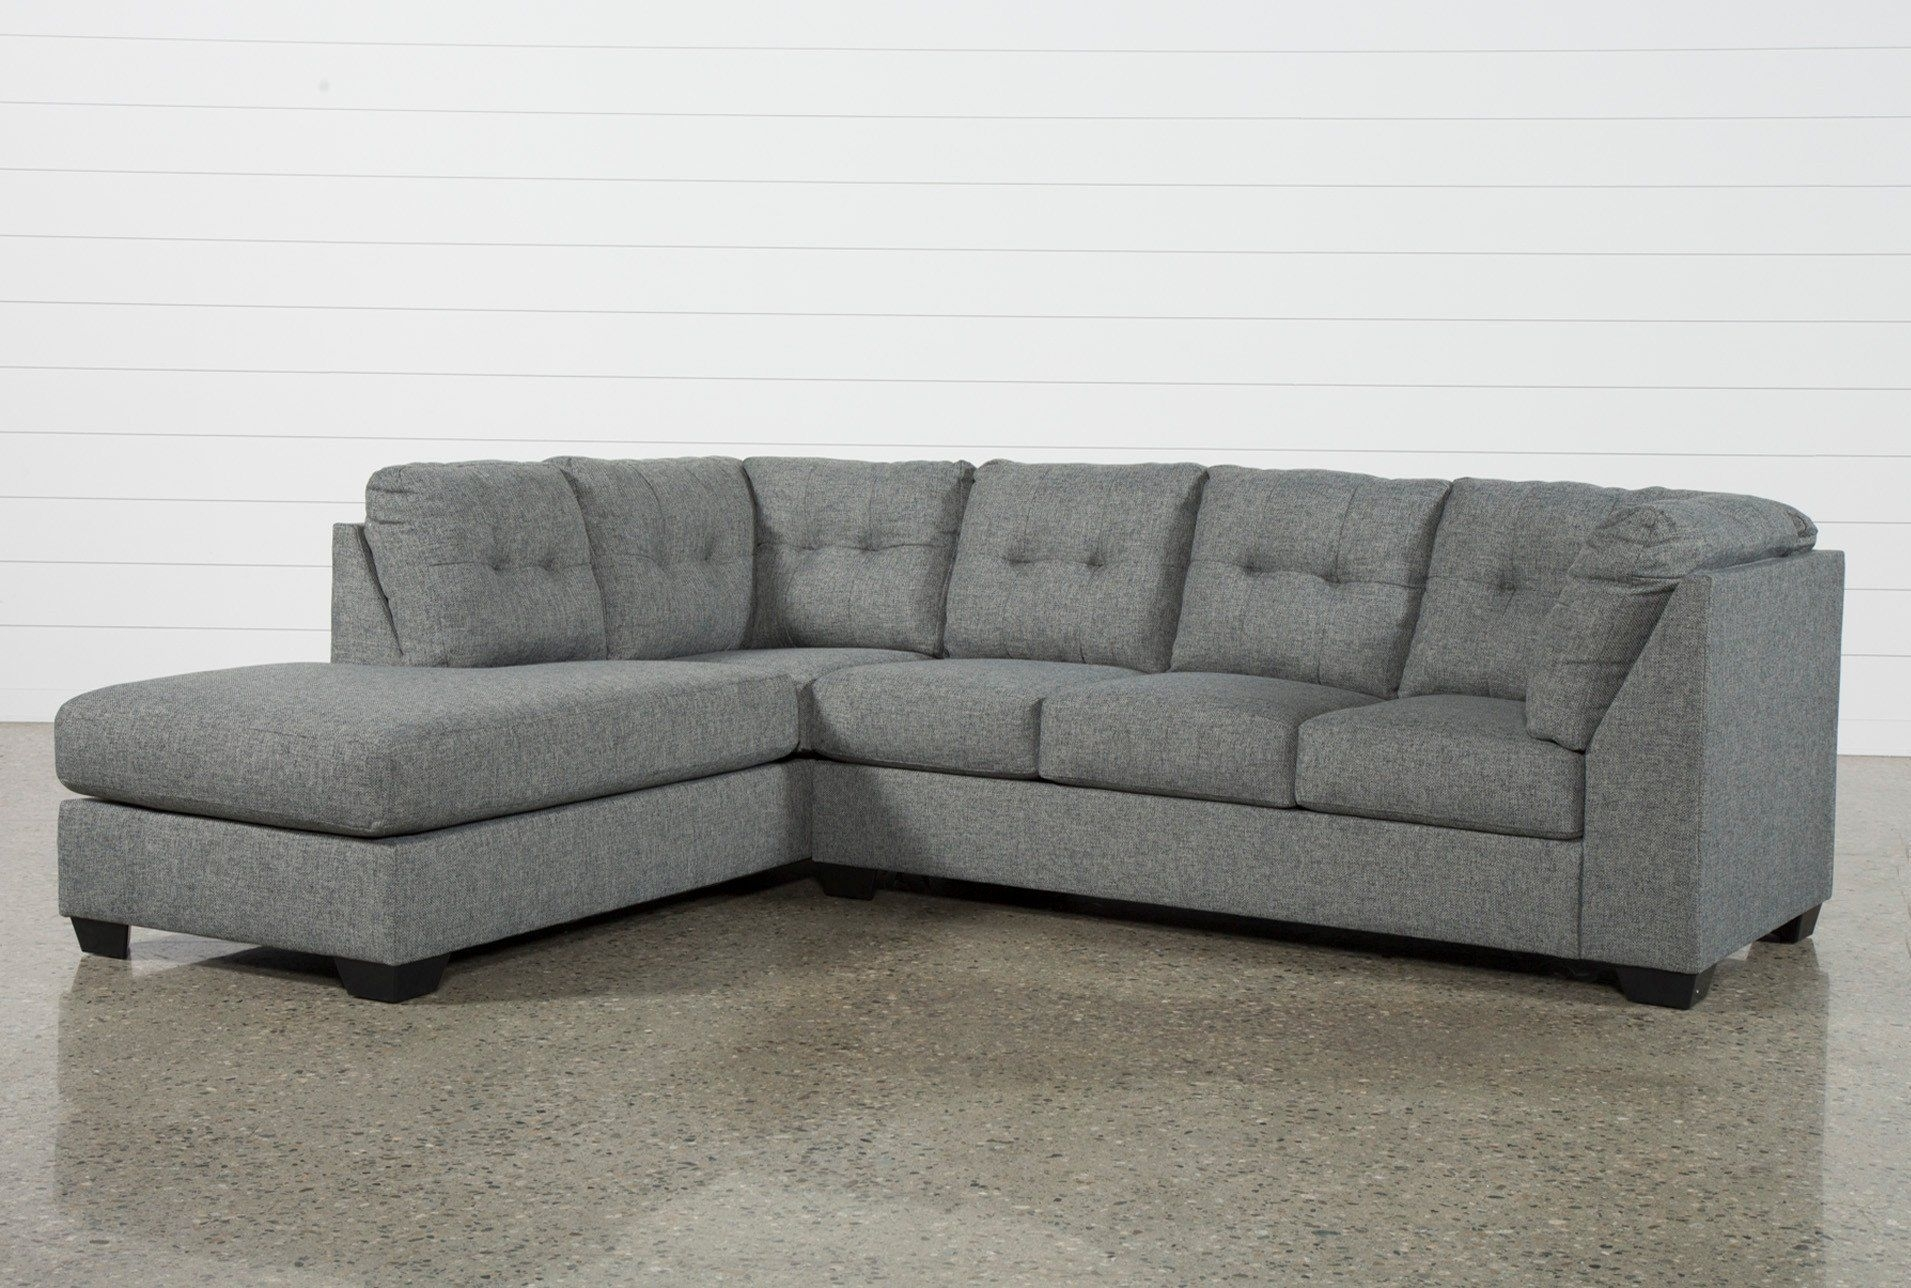 Cosmos Grey 2 Piece Sectional W/laf Chaise | Quilling | Pinterest with Cosmos Grey 2 Piece Sectionals With Laf Chaise (Image 8 of 30)